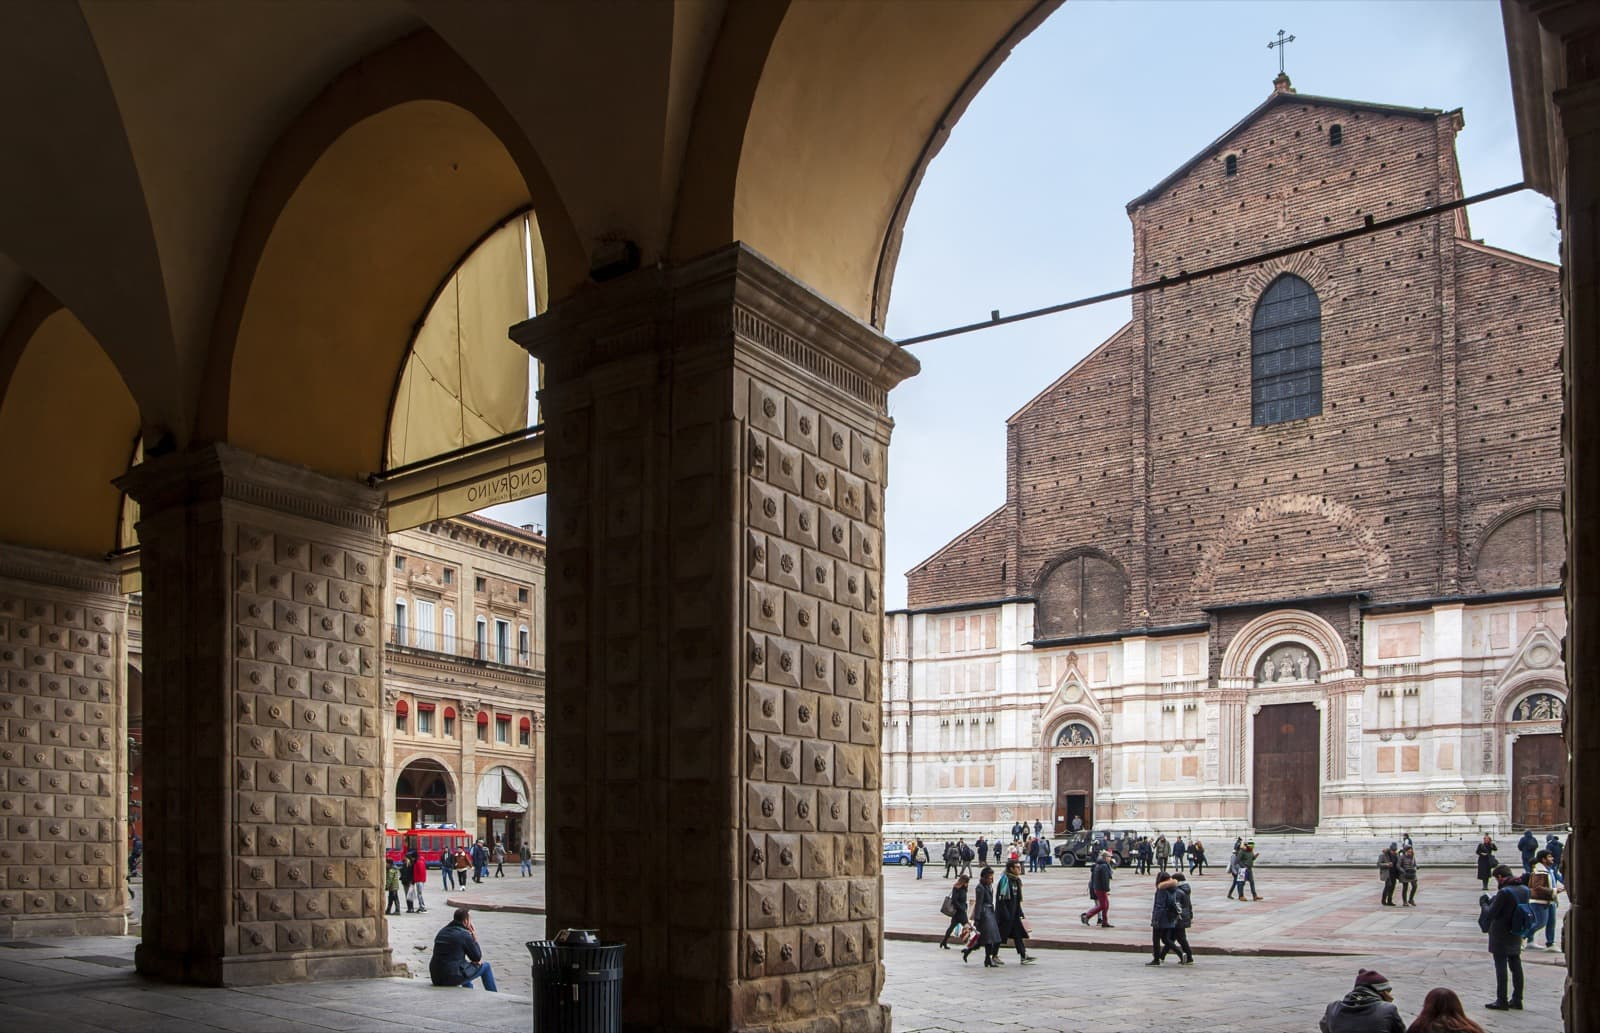 Where to go from Venice? 3 days of culture and cuisine in Bologna, Modena & Parma